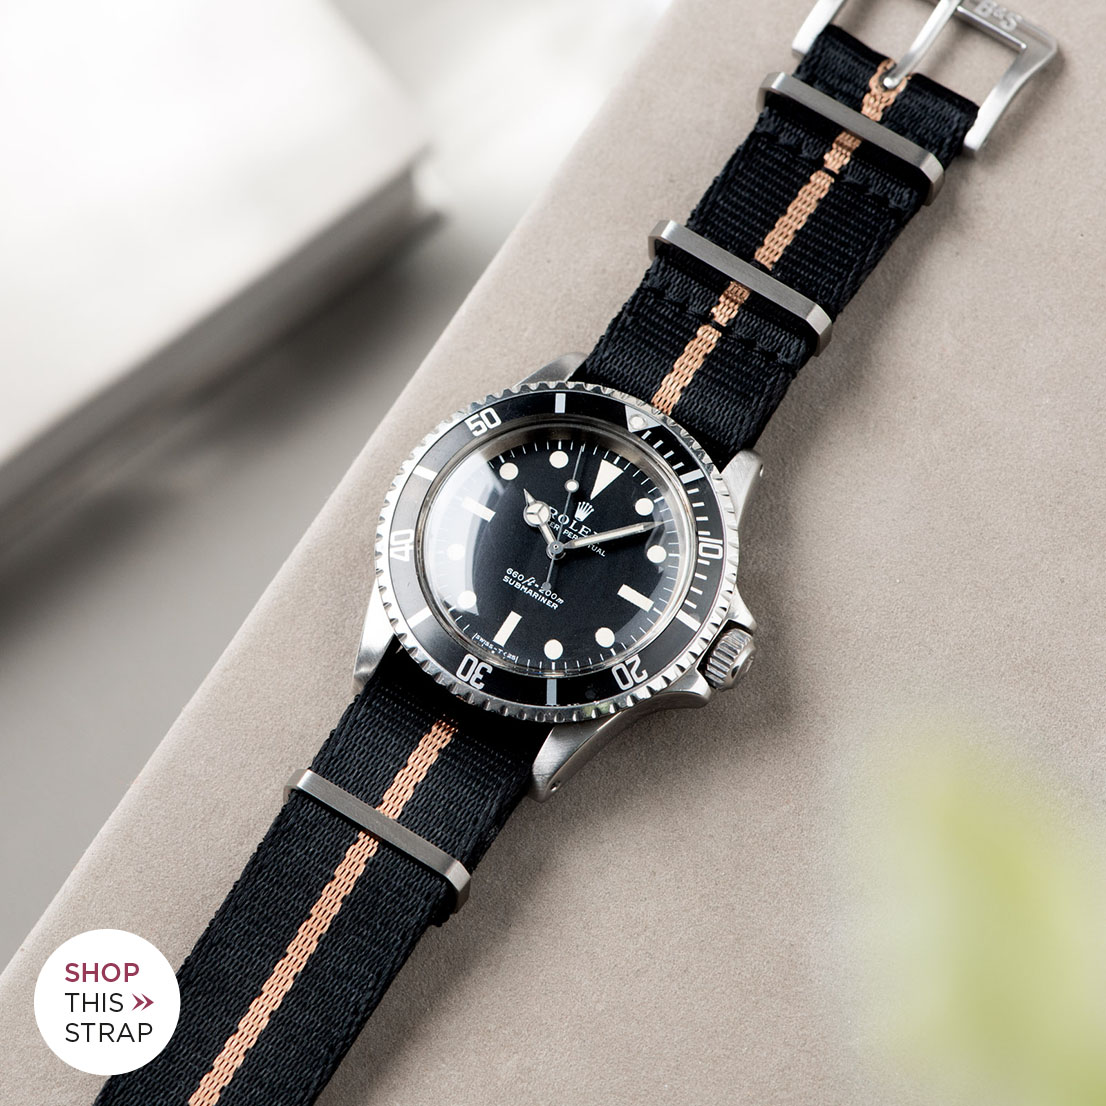 Bulang and Sons_Strap Guide_Rolex 5513 Submariner_DELUXE NYLON NATO WATCH STRAP BLACK ONE STRIPE BRONZE